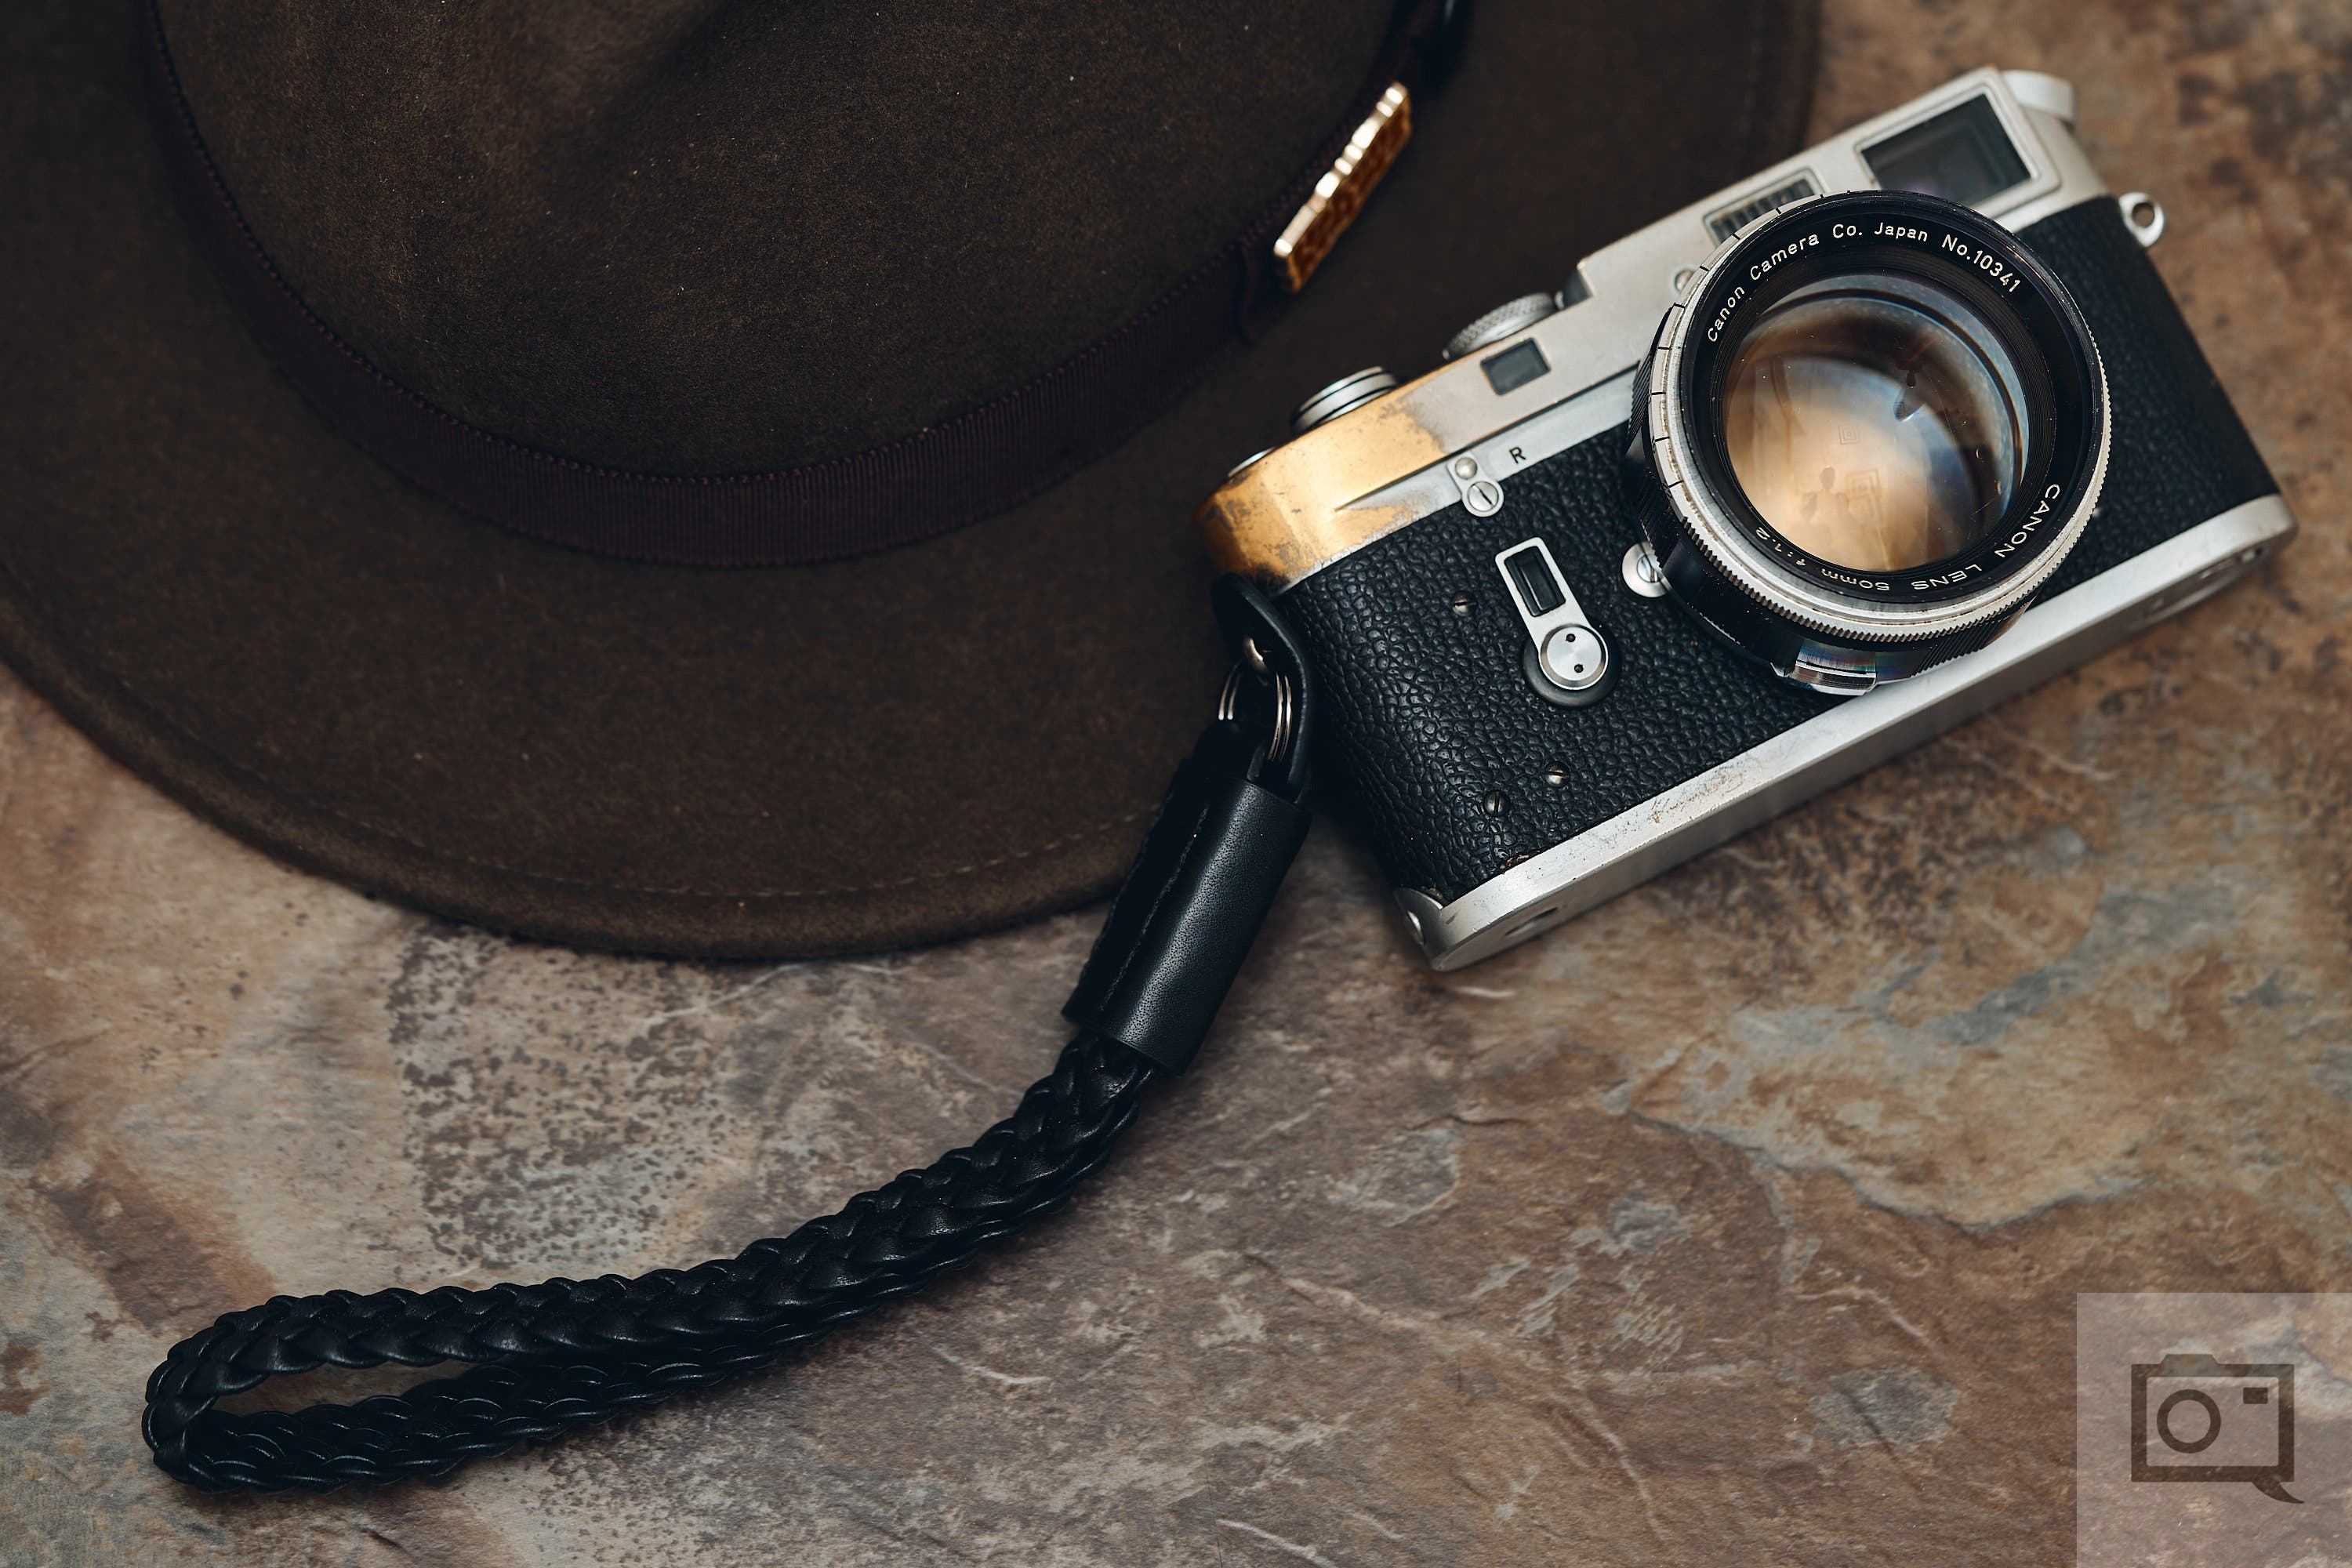 What's Your Favorite Vintage Camera? This and More on Pro Camera Reviews